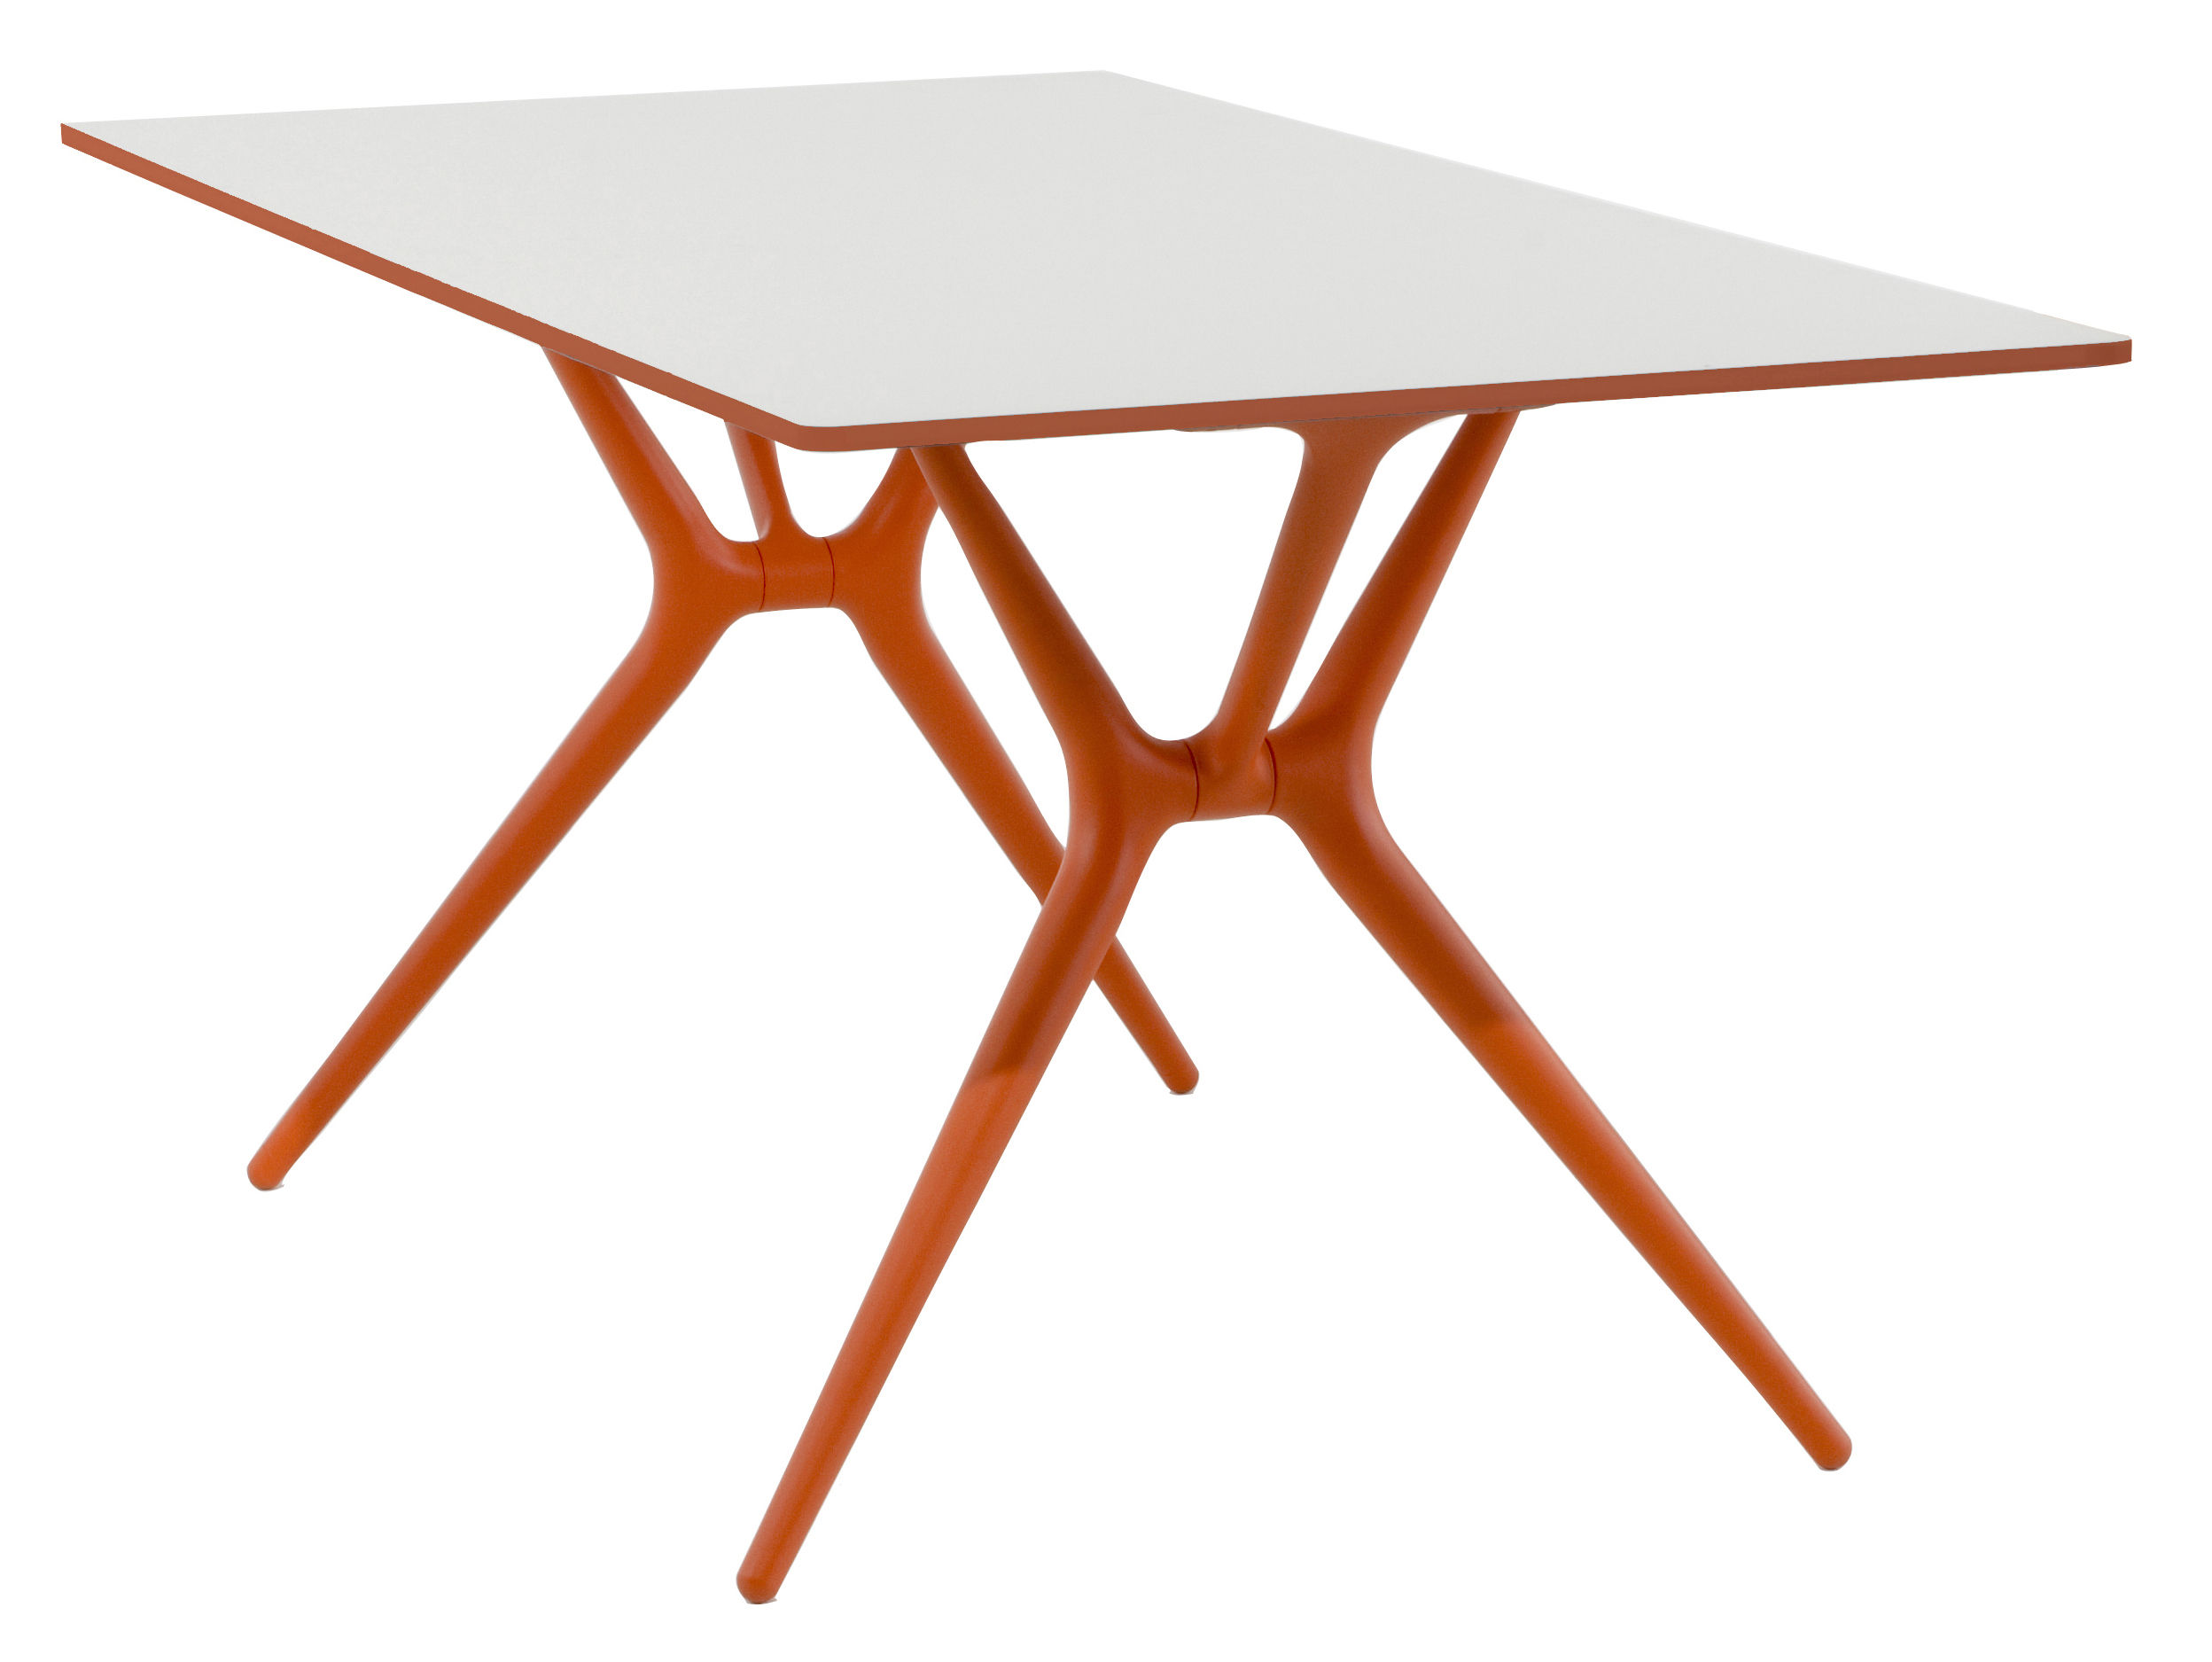 Furniture - Teen furniture - Spoon Foldable table - 200 x 90 cm by Kartell - White / orange feet - Laminated finish aluminium, Technopolymer